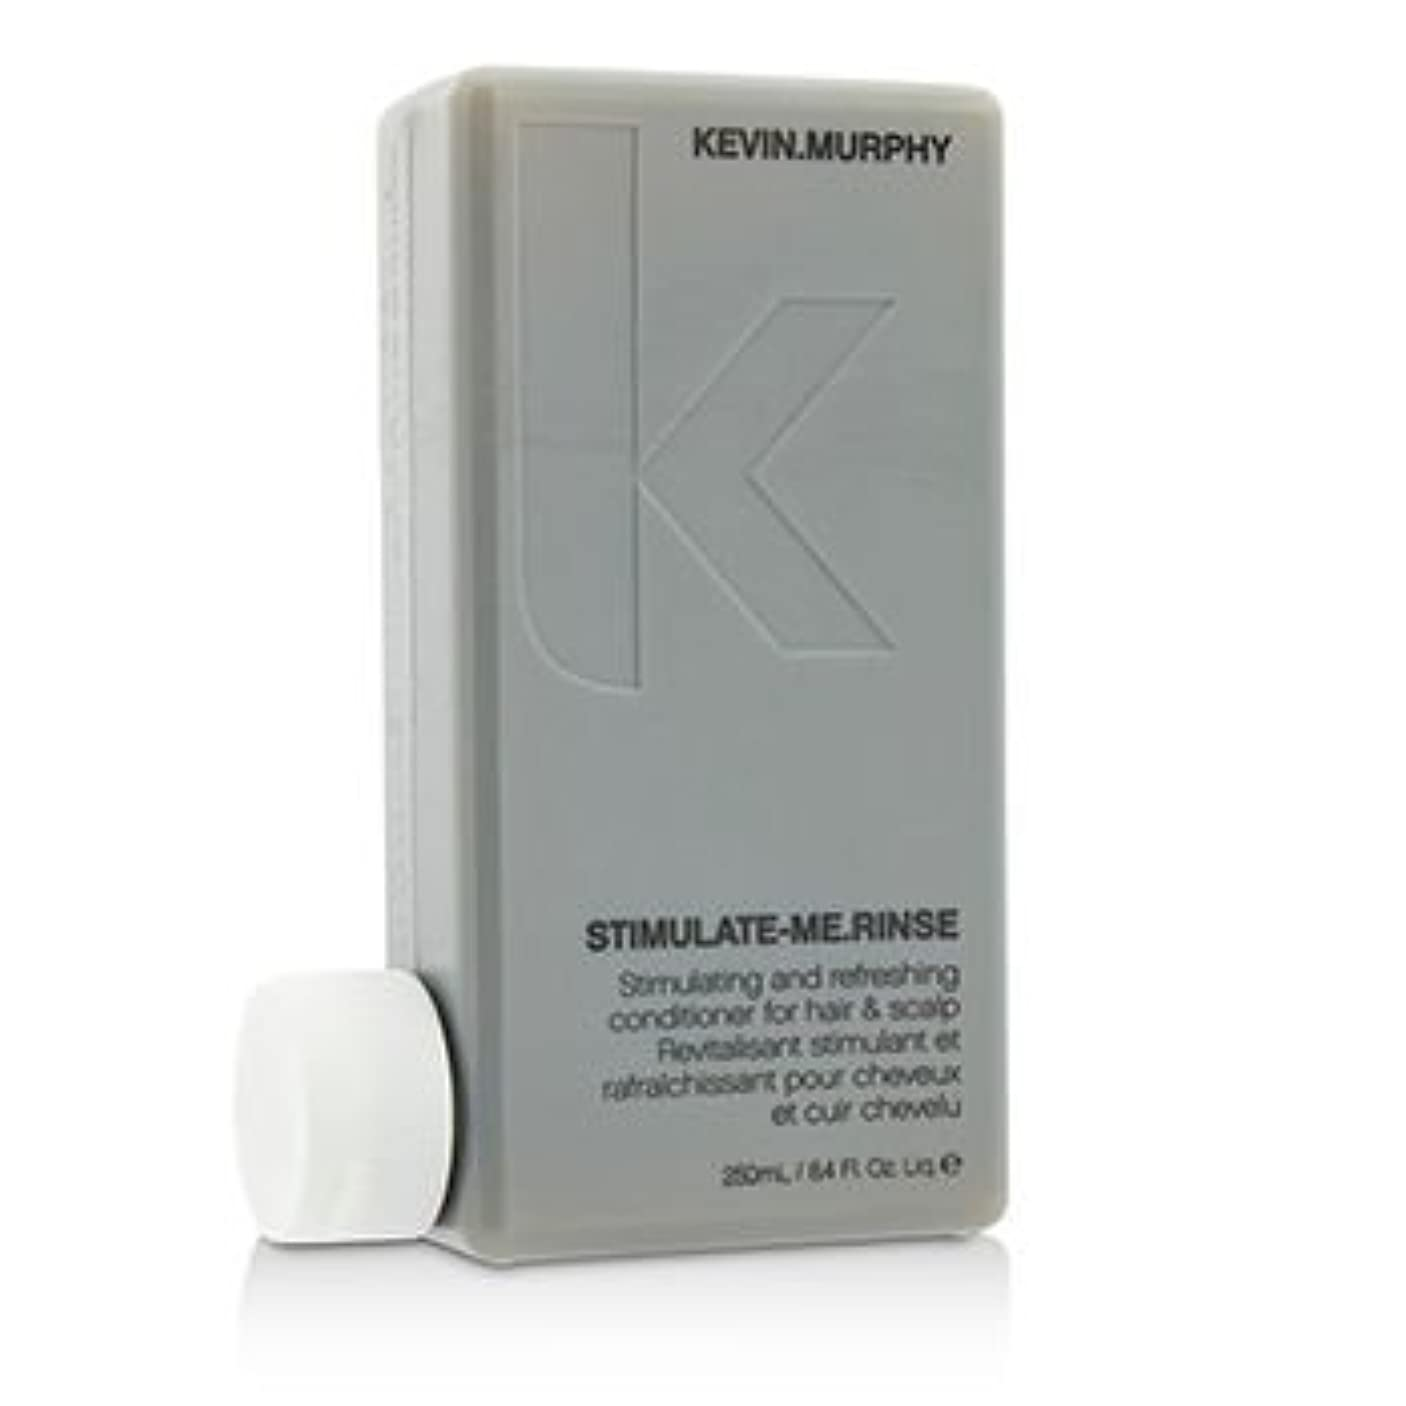 請求器用発生器[Kevin.Murphy] Stimulate-Me.Rinse (Stimulating and Refreshing Conditioner - For Hair & Scalp) 250ml/8.4oz